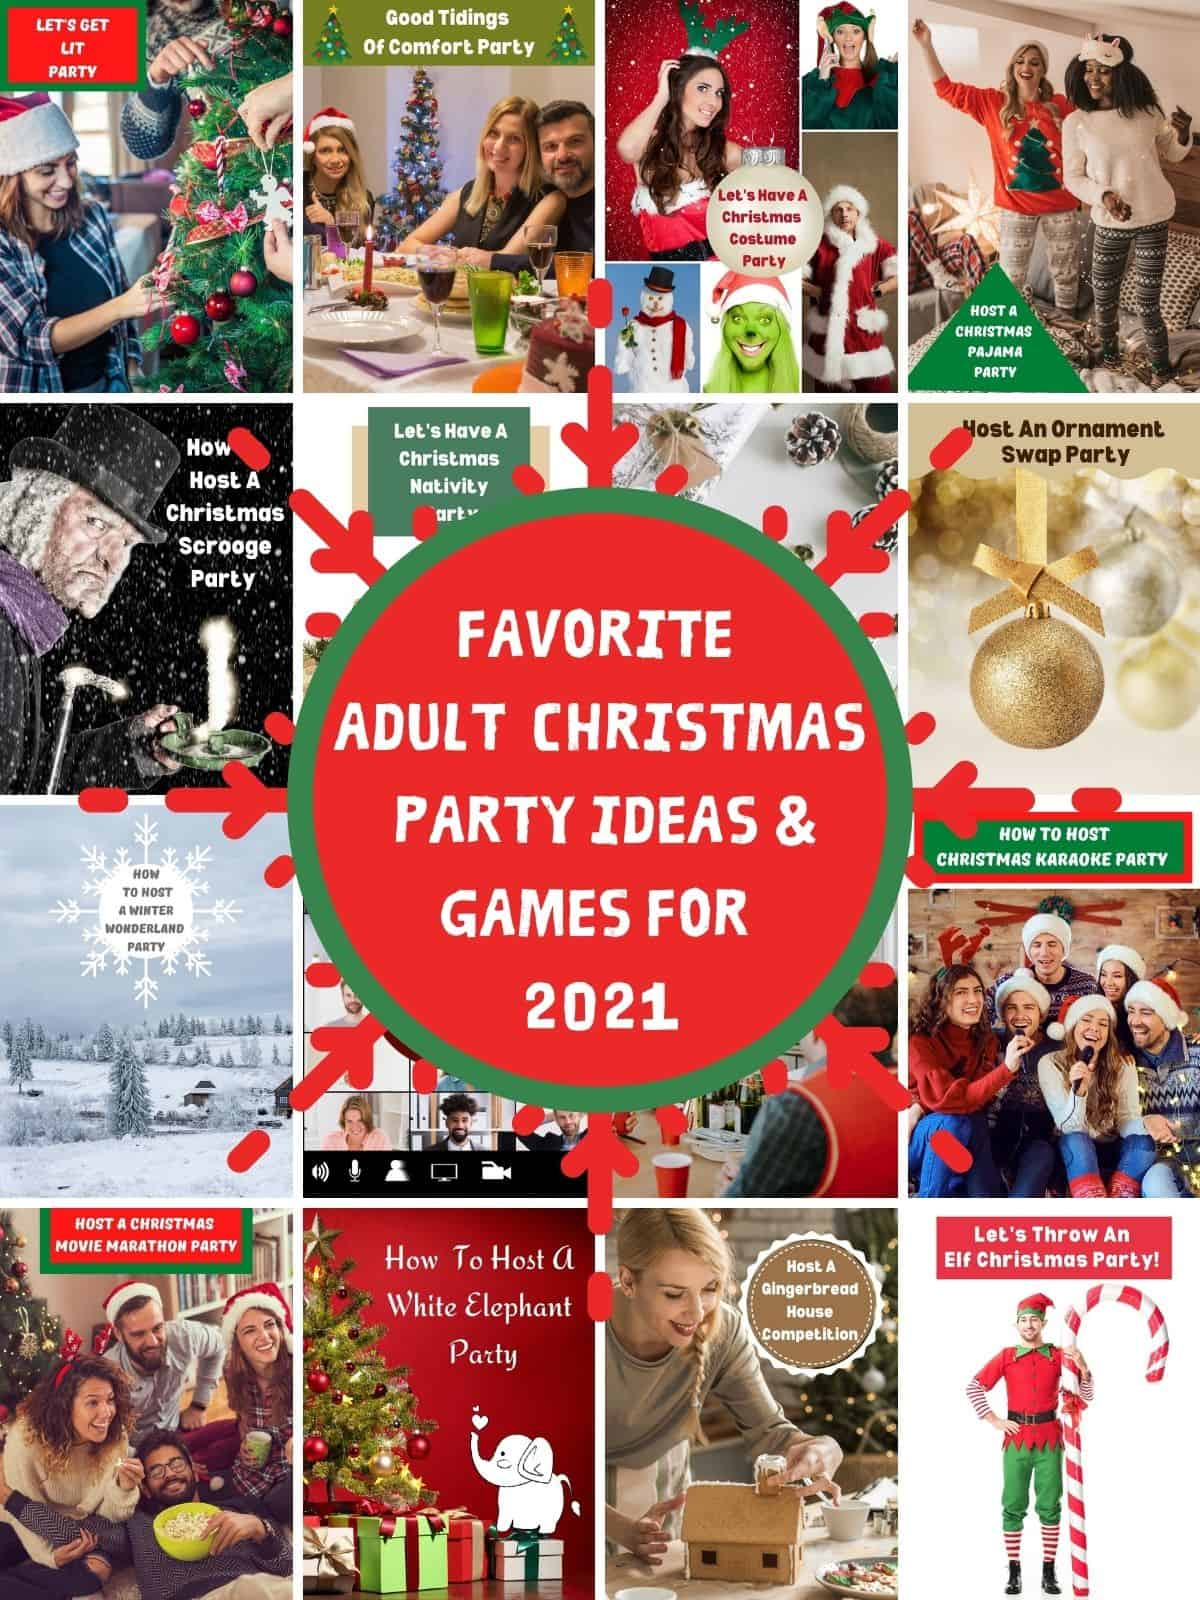 Favorite Adult Christmas Party Ideas & Games For 2021